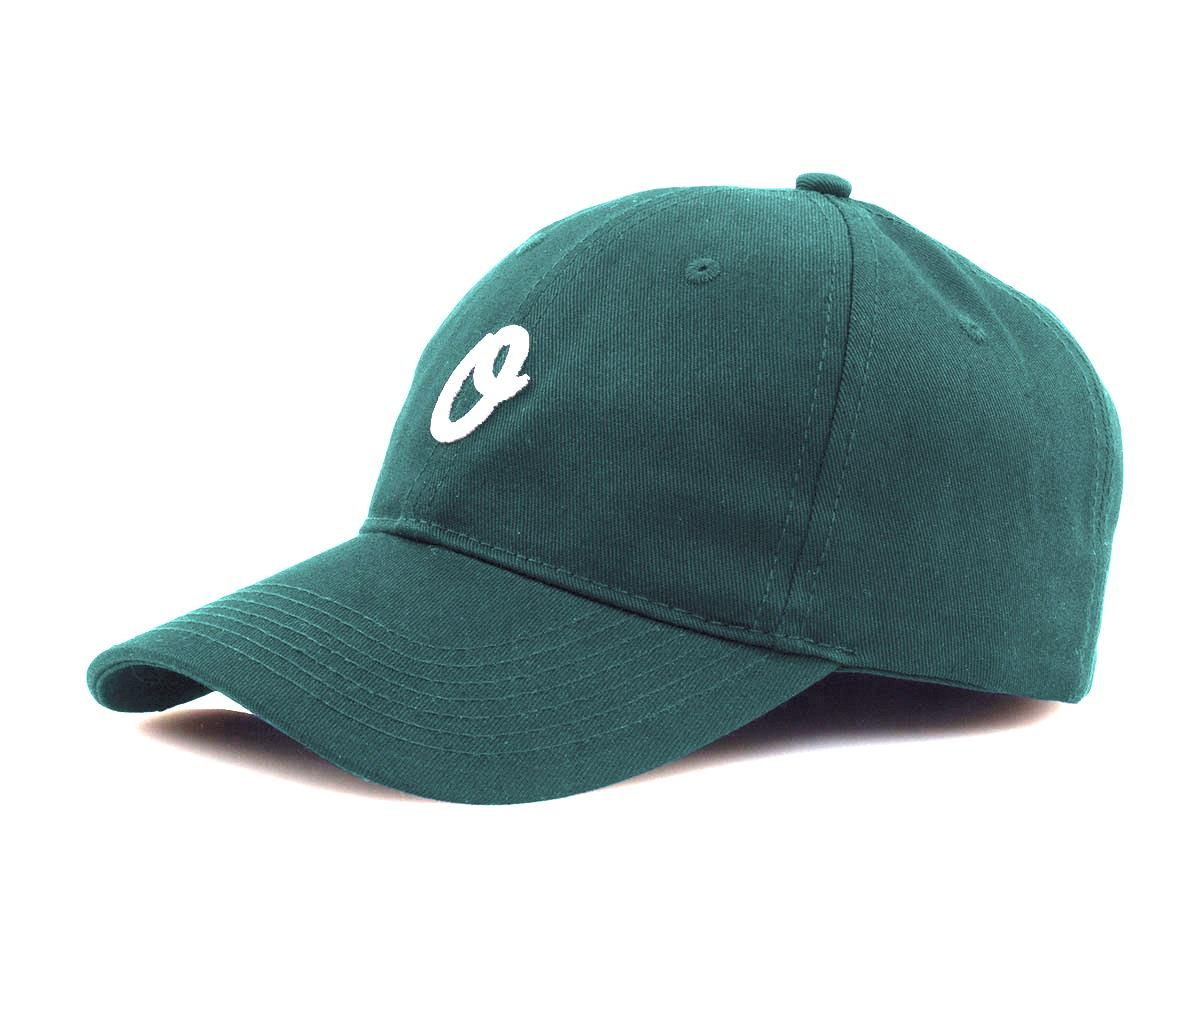 Official Cap Miles Olo Sport Green 6 Panel Unstructured Strapback Skateboard Hat OSFM CFREE POST New